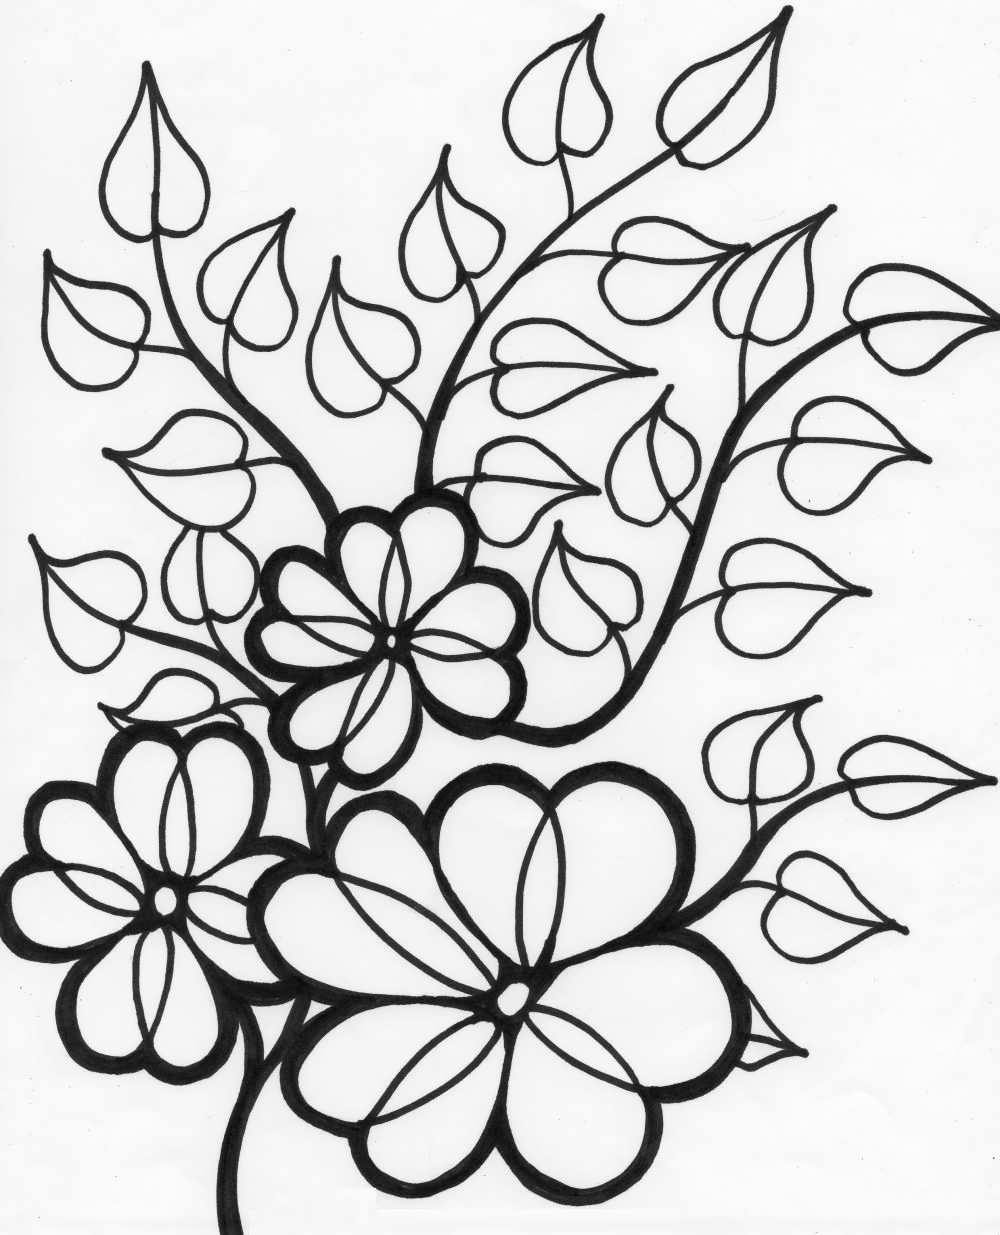 flowers outlines for colouring daisy flower outline free download on clipartmag colouring for outlines flowers